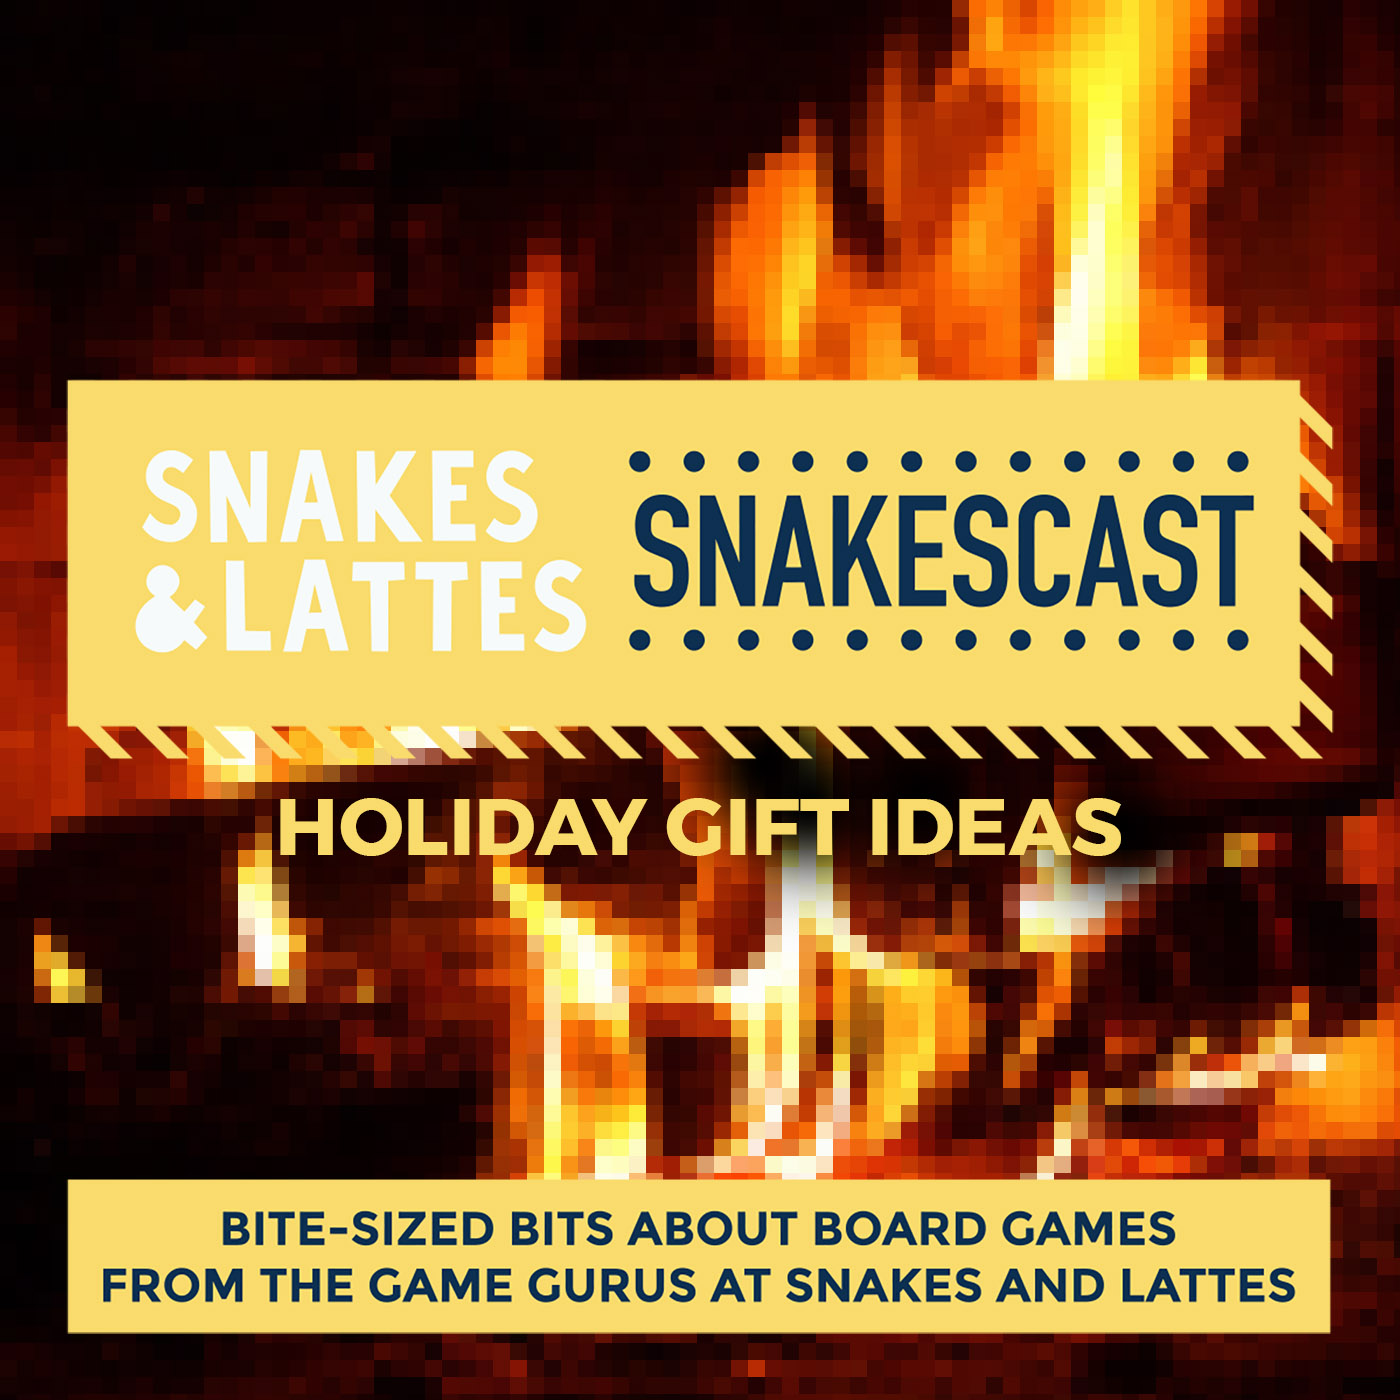 Holiday Gift Ideas, Part 3 - Party Games and Stocking Stuffers